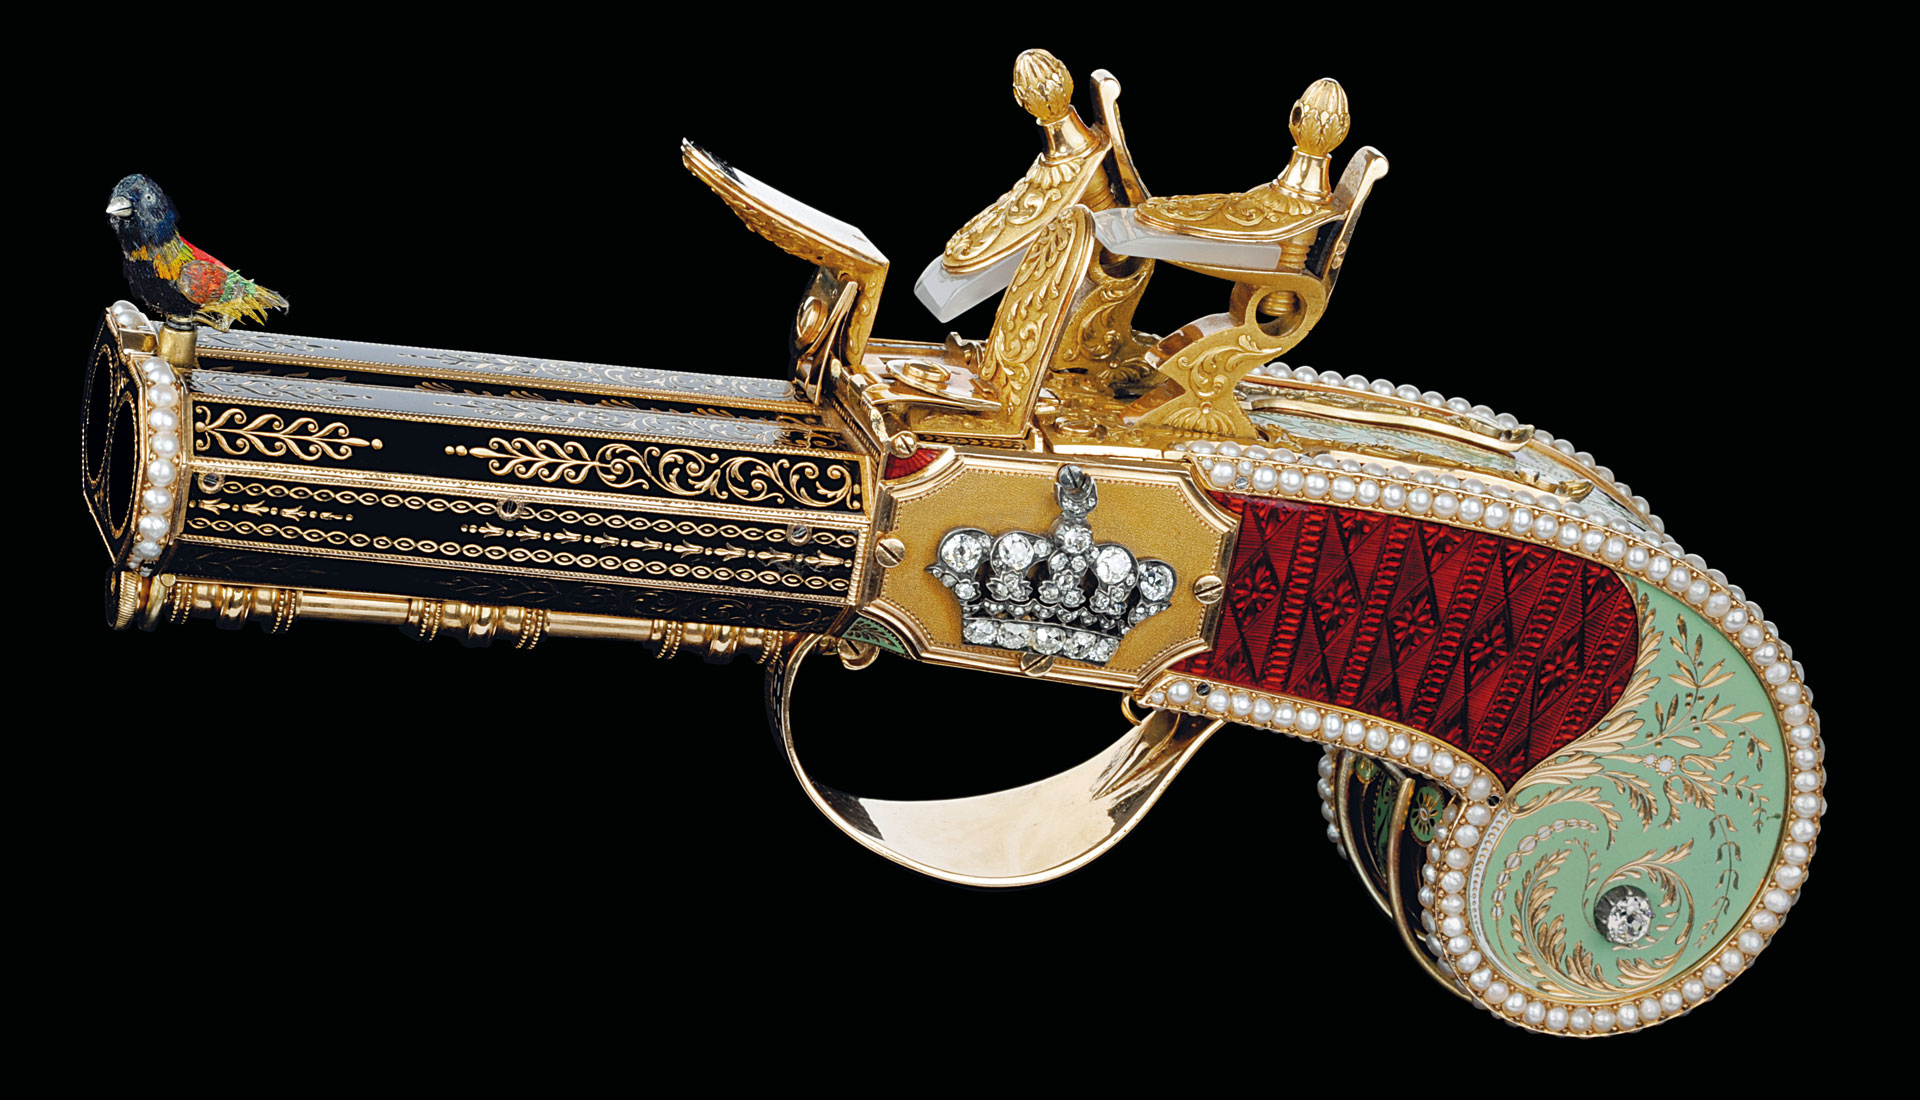 The double-barrel pistol and its songbird